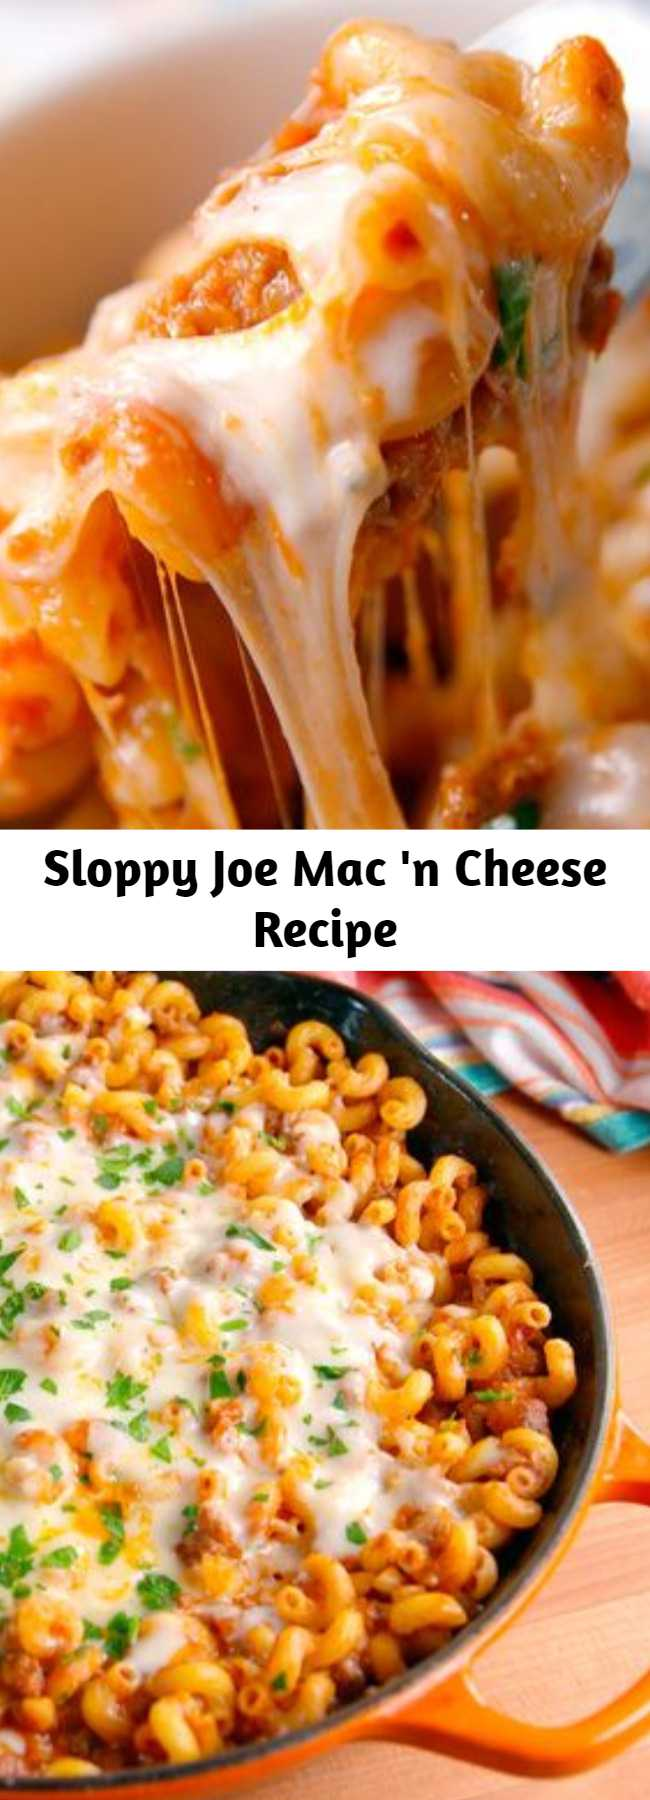 Sloppy Joe Mac 'n Cheese Recipe - Bolognese is too high-brow for a busy weeknight, you need sloppy joe mac n cheese. #pasta #easyrecipes #macandcheese #dinnerideas #recipe #easy #sloppyjoe #casserole